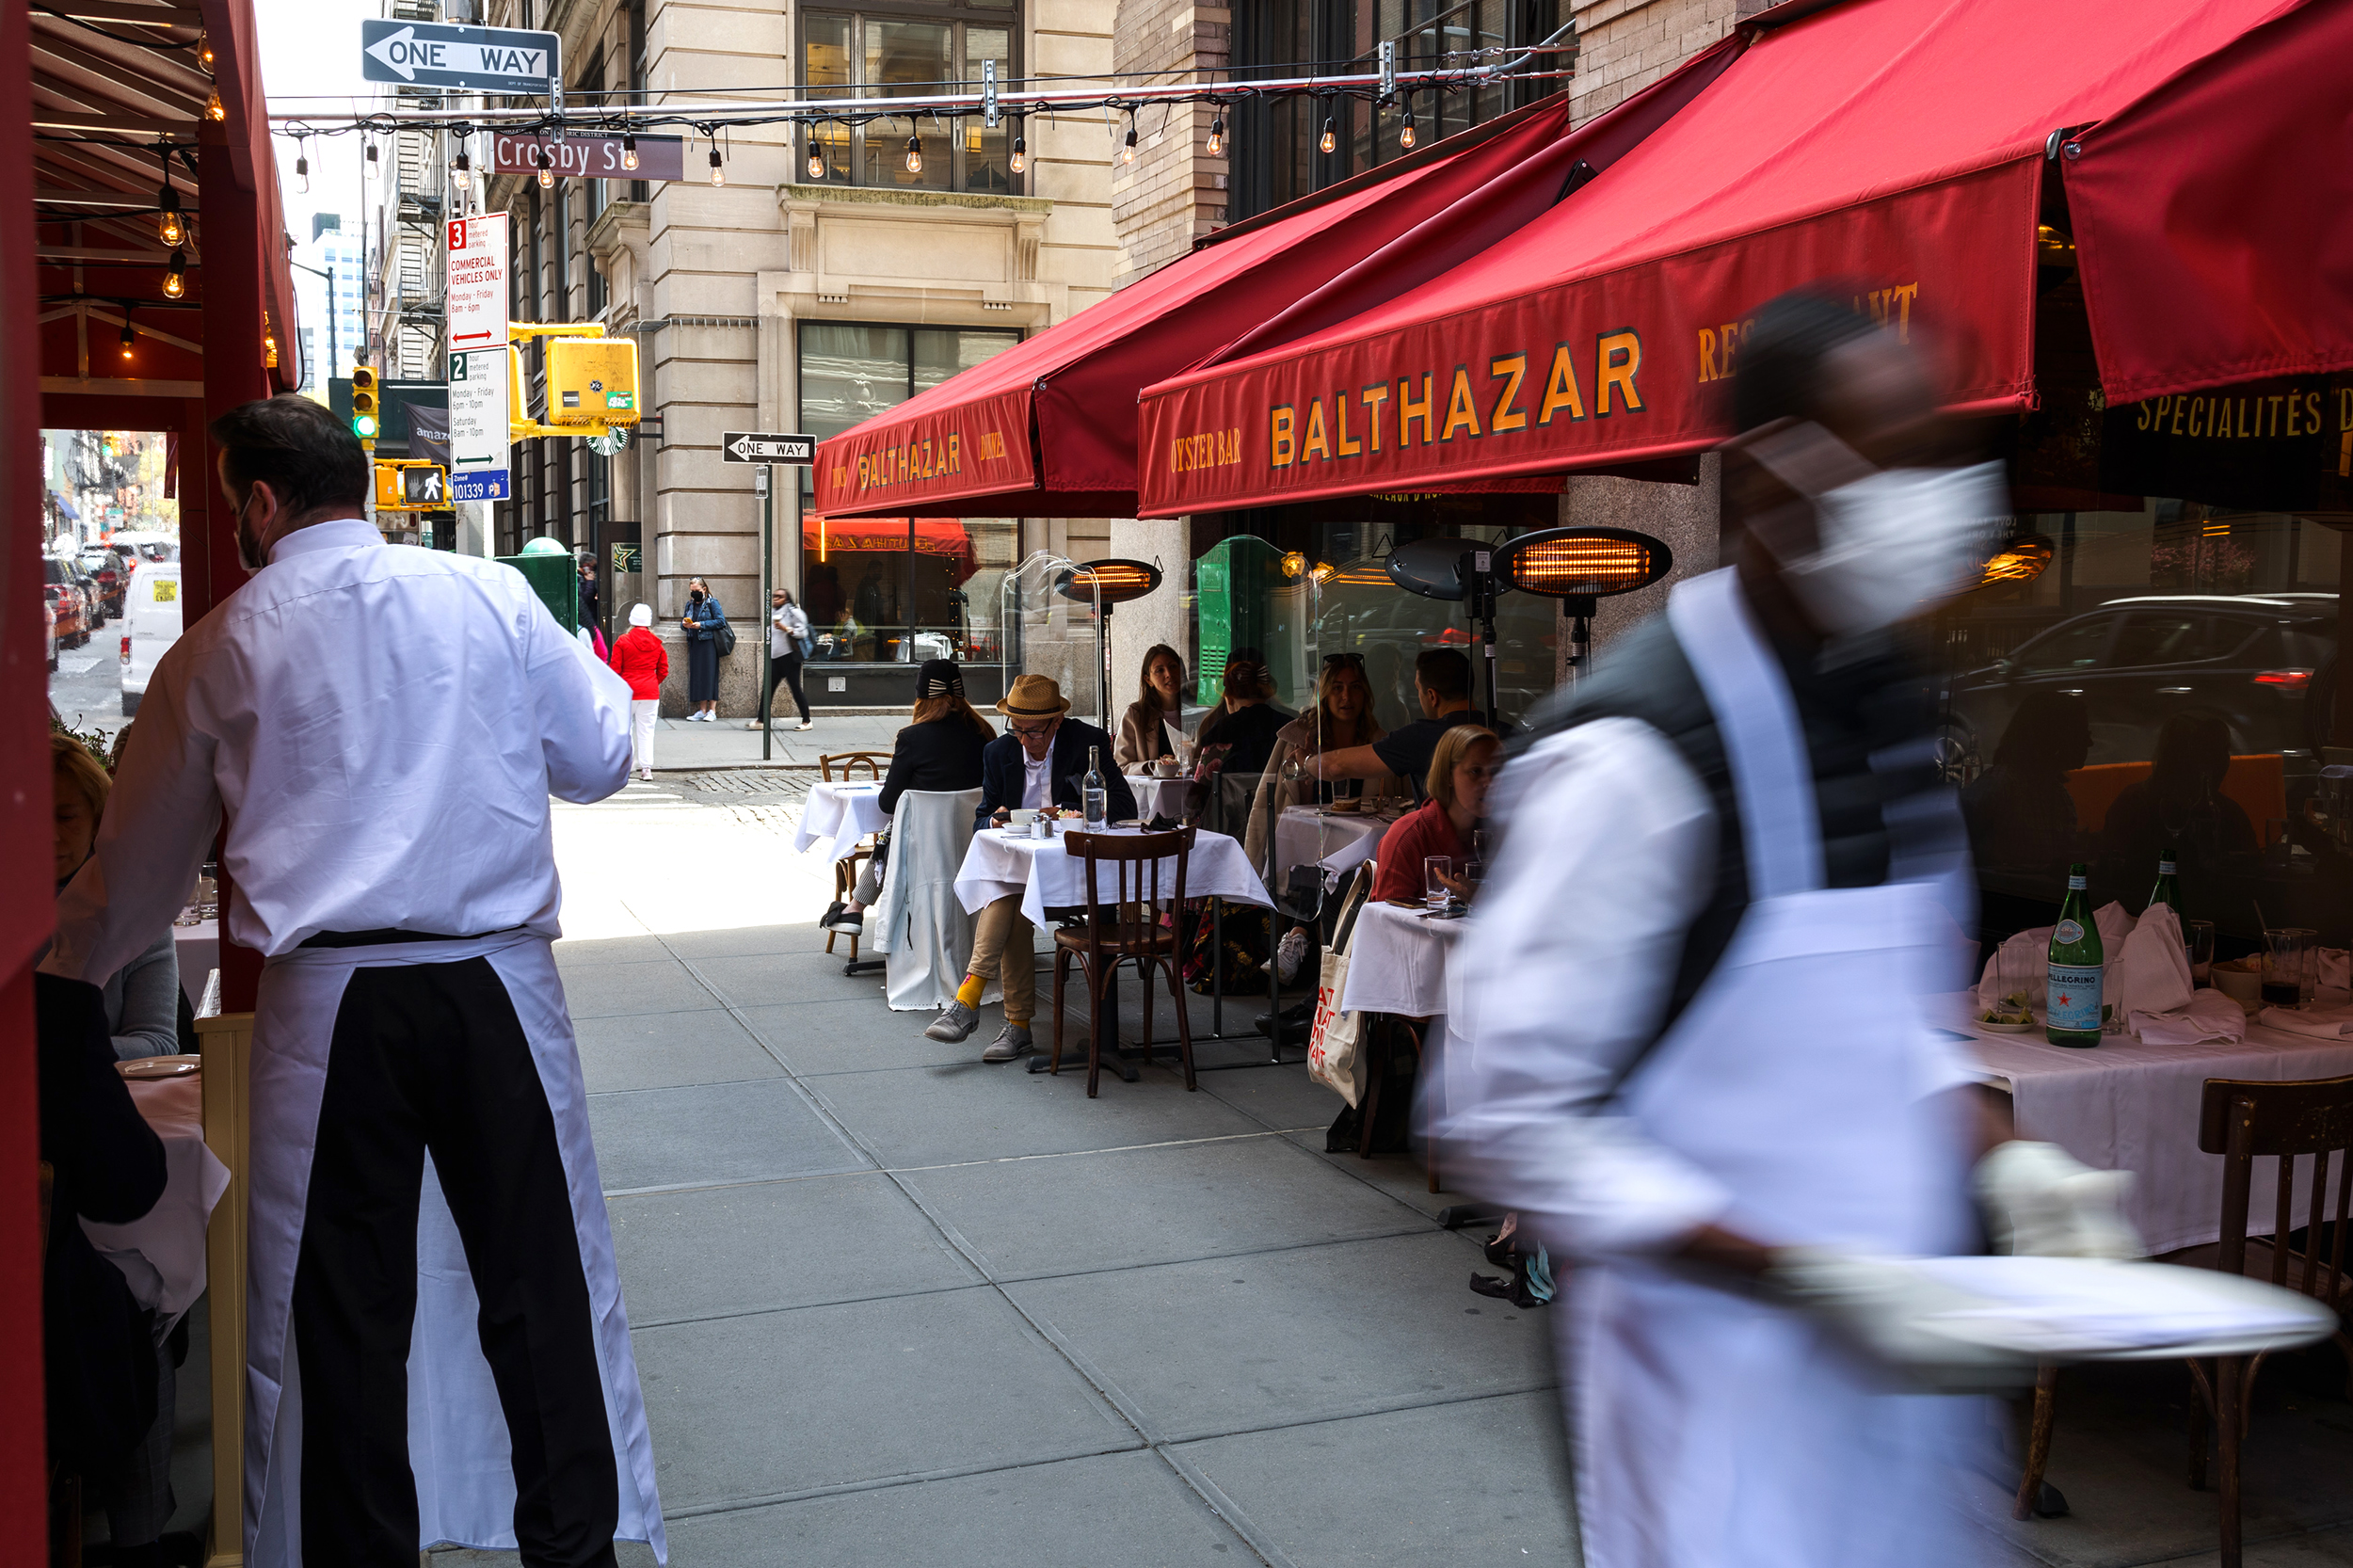 As comfort food takes over, will we ever want white tablecloth dining again?